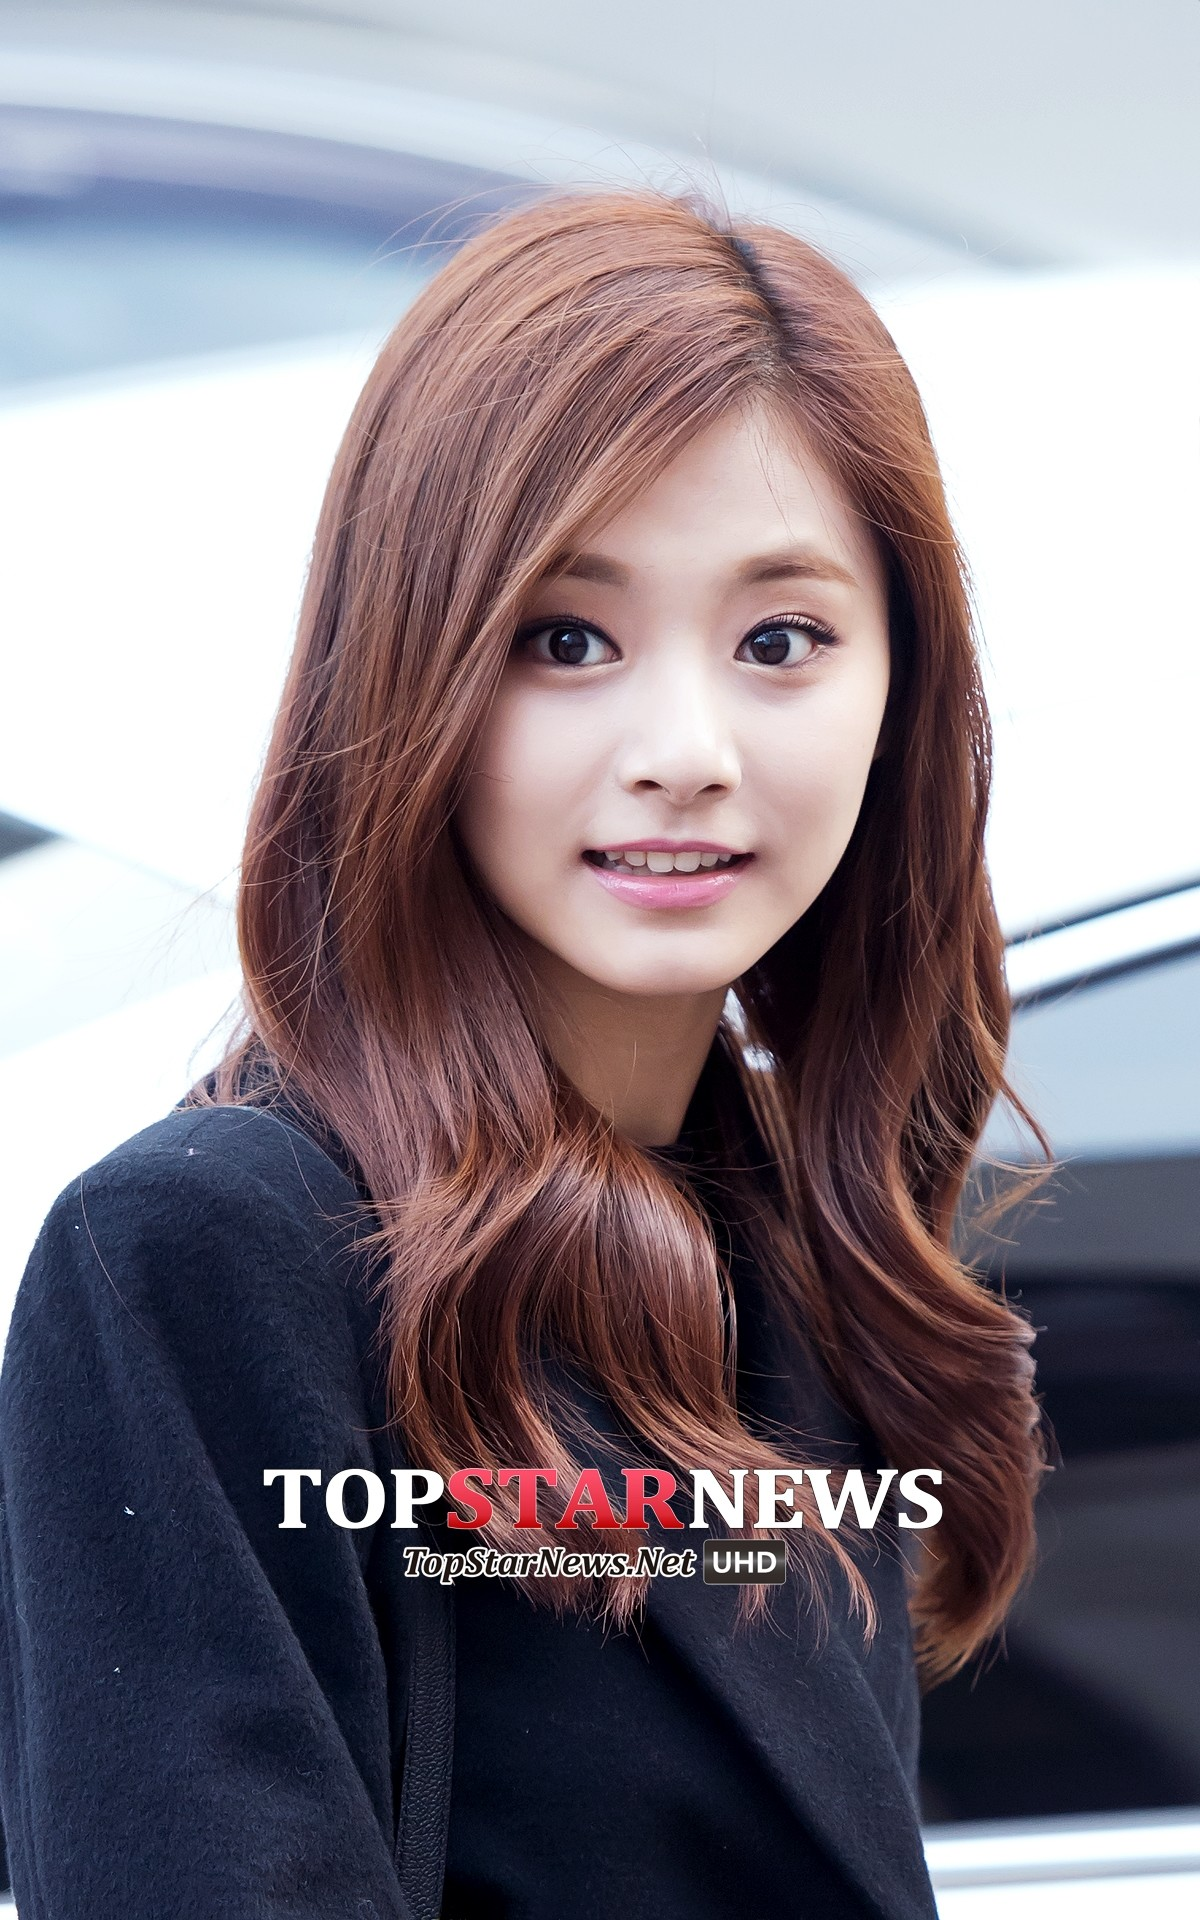 1200x1920 Explore Wallpapers Android, Iphone 6 and more! Tzuyu